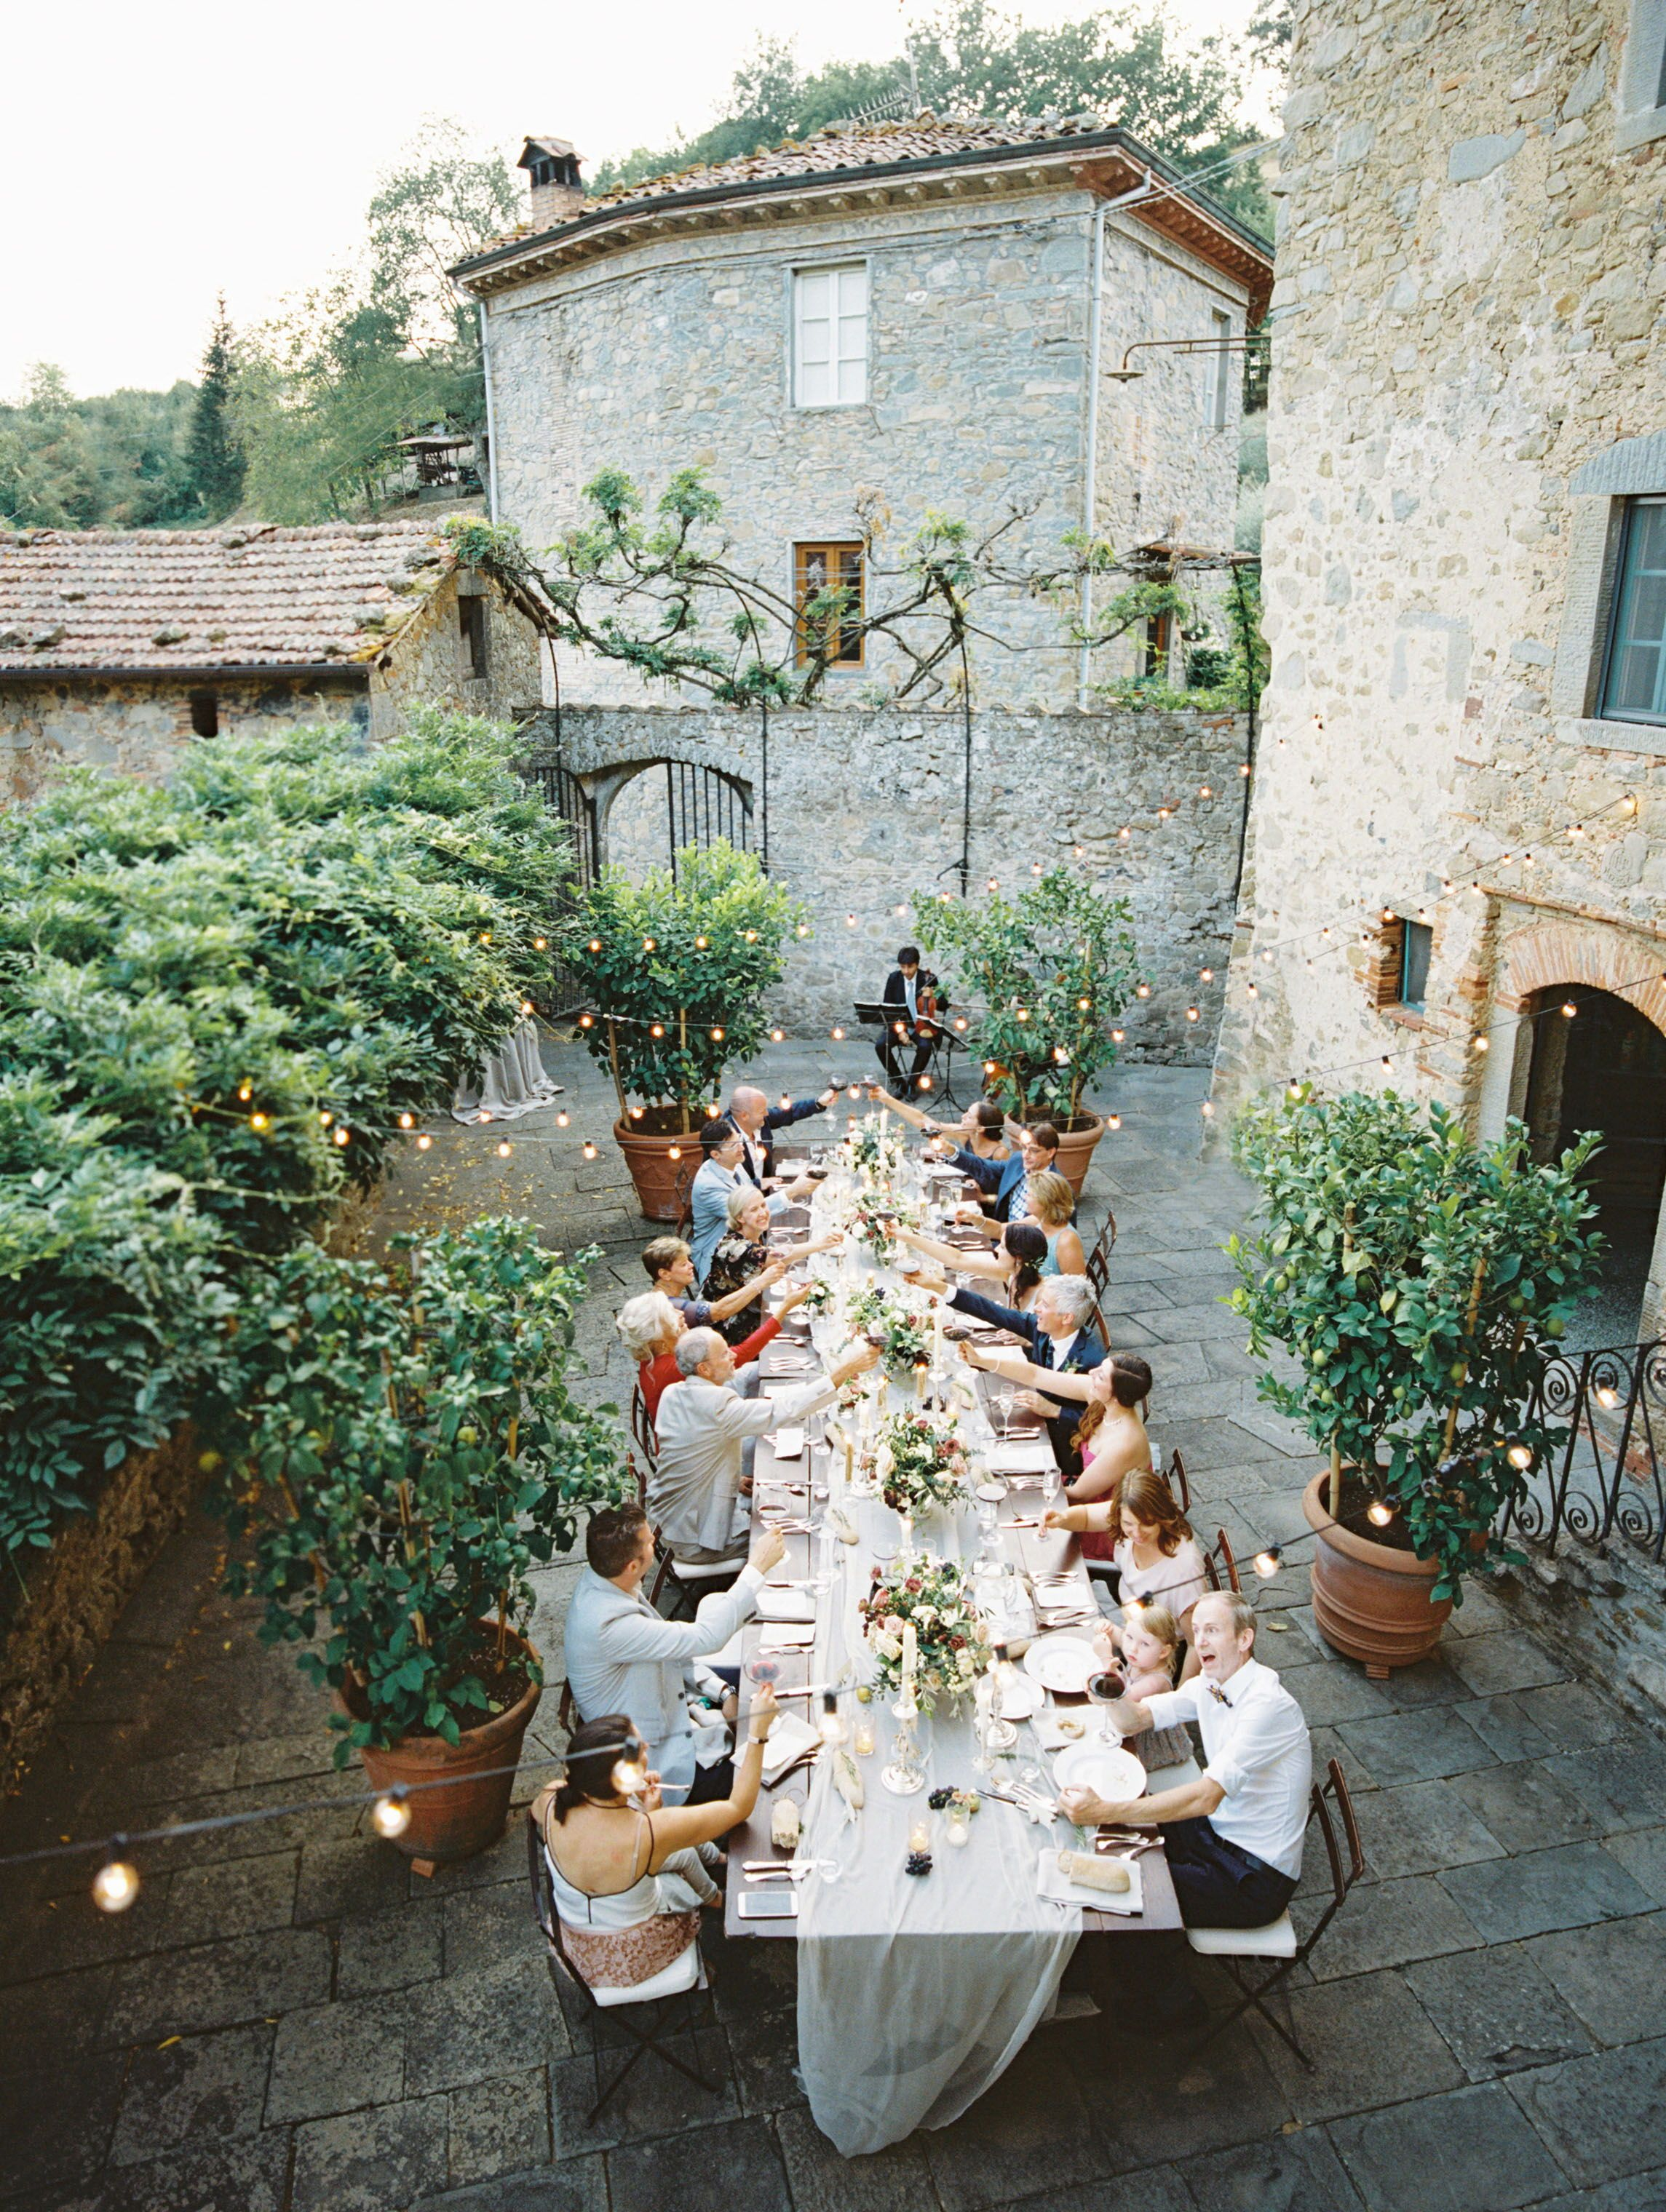 Italian Intimate Destination Wedding In Tuscany Reception Dinner Guests Courtyard Tuscan Italy Blue Vil Tuscany Wedding Tuscan Wedding Italian Wedding